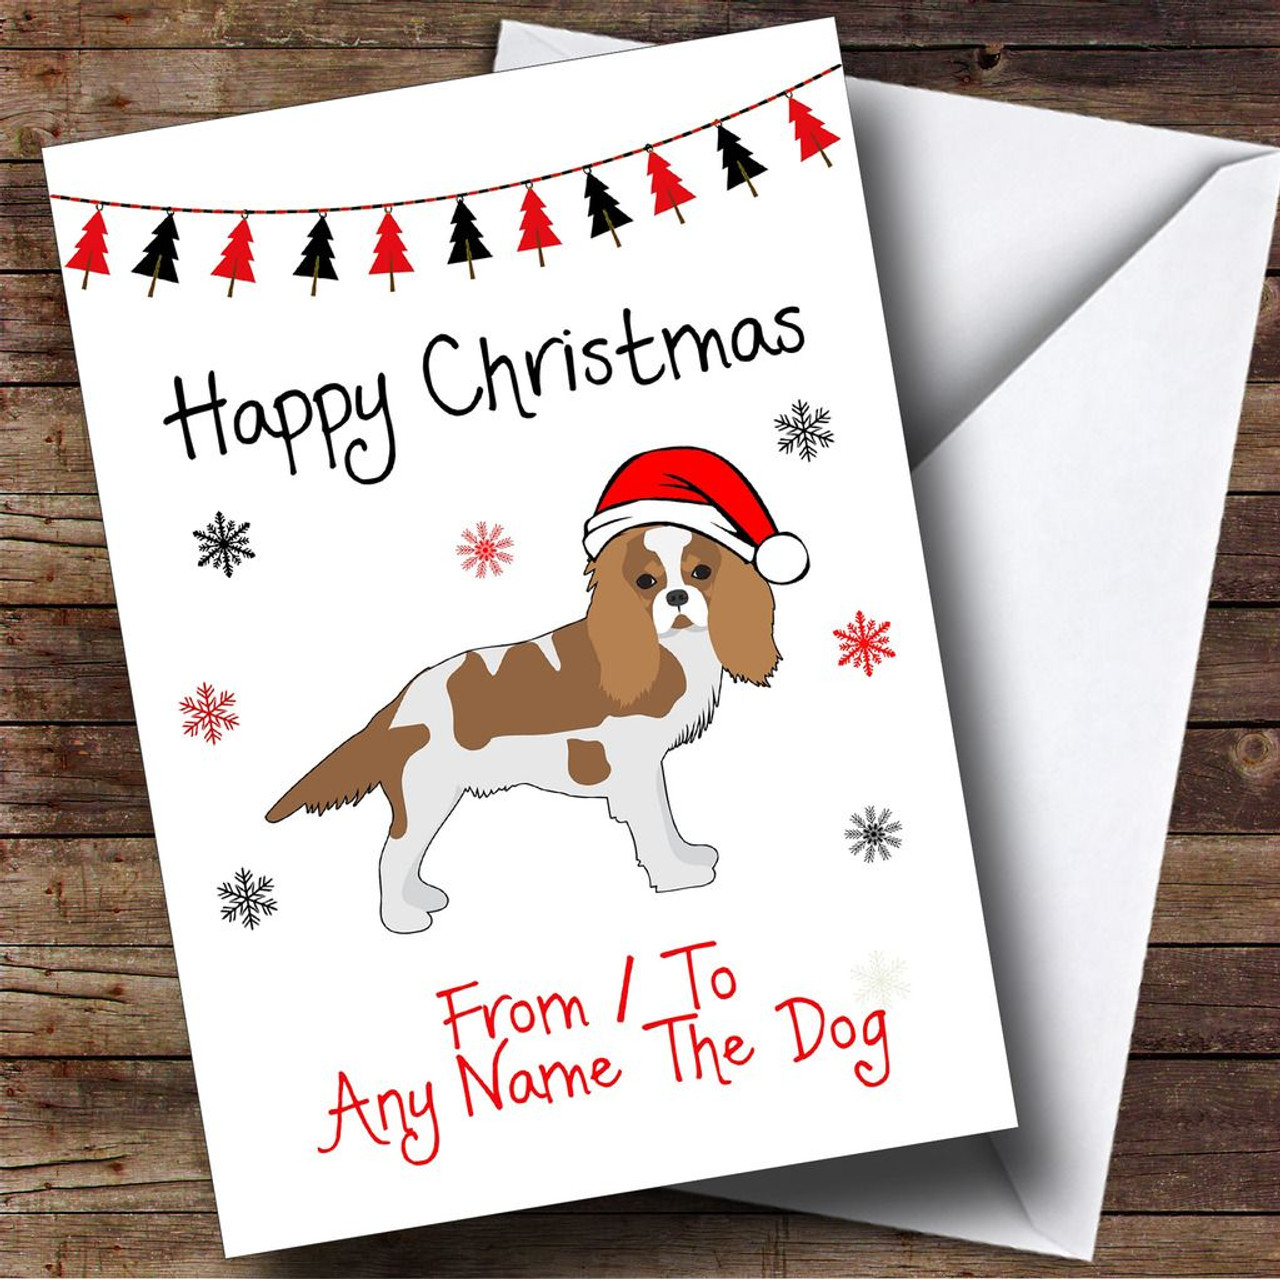 Spaniel From Or To The Dog Pet Personalised Christmas Card